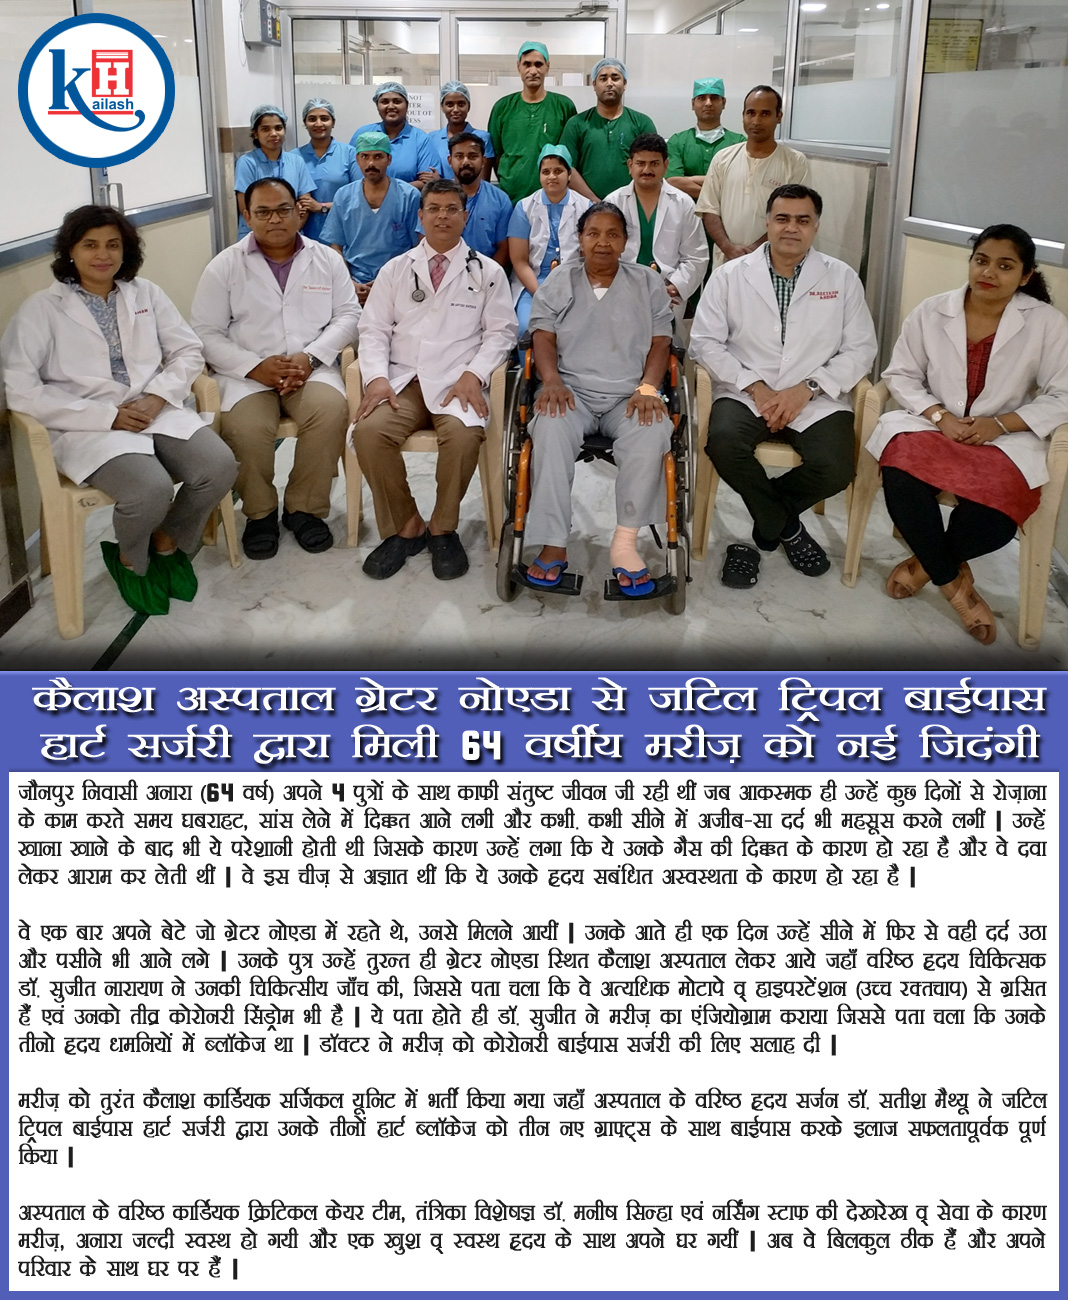 64 Years-old patient gets a new life through Successful Triple Bypass Heart Surgery at Kailash Hospital Greater Noida